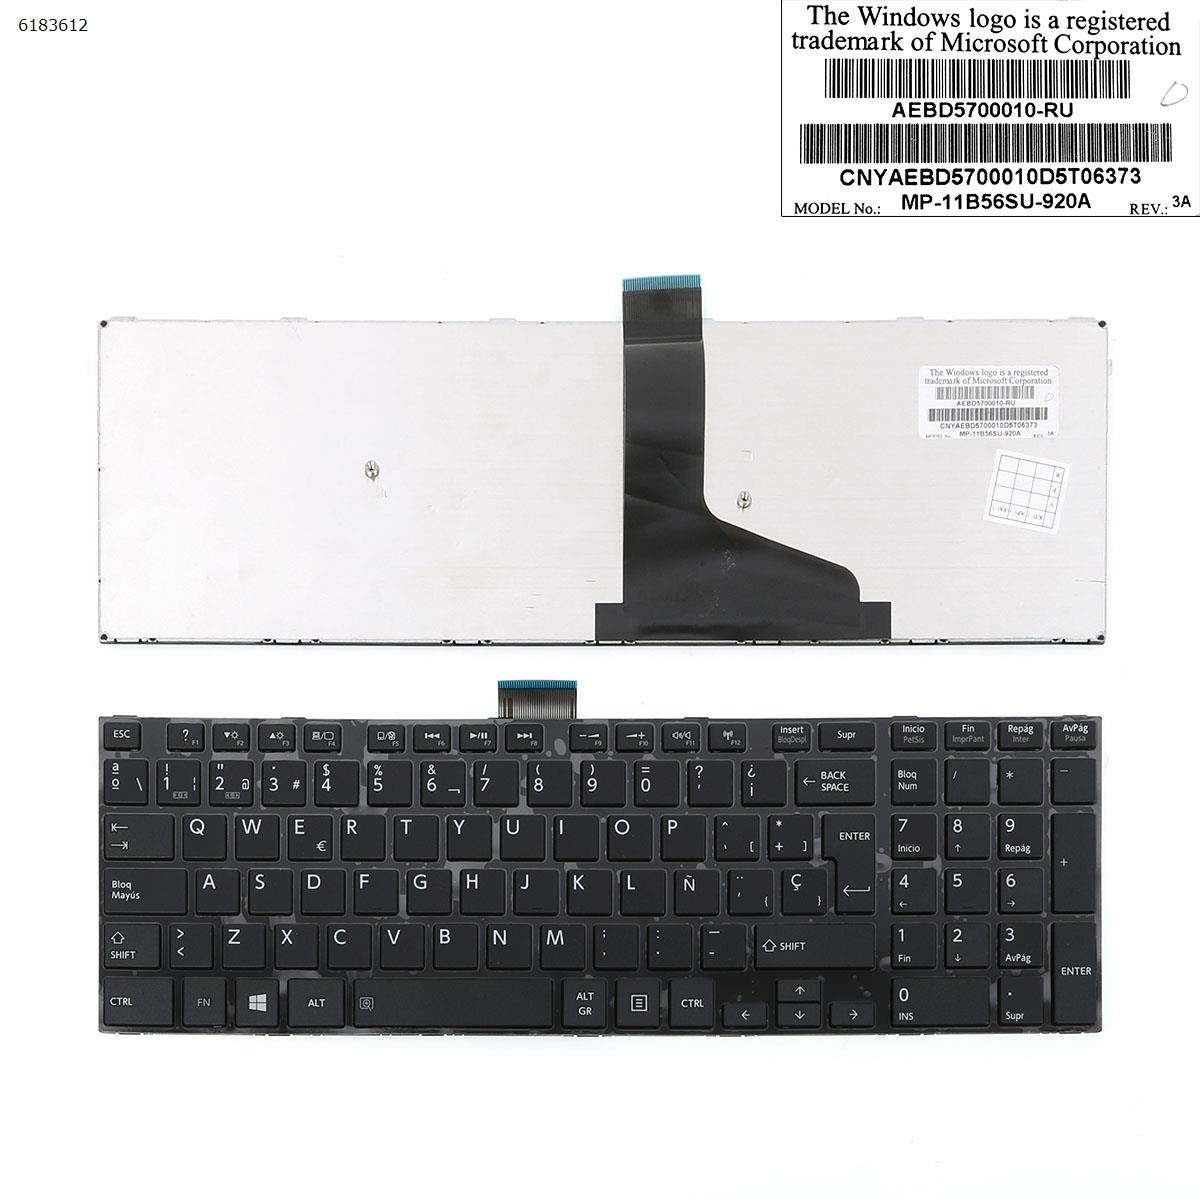 SP Spanish Layout New Replacement Keyboard for Toshiba Satellite S50-A S50D-A S50t-A S55-A S55t-A S55D-A S70-A S70t-a Laptop фото